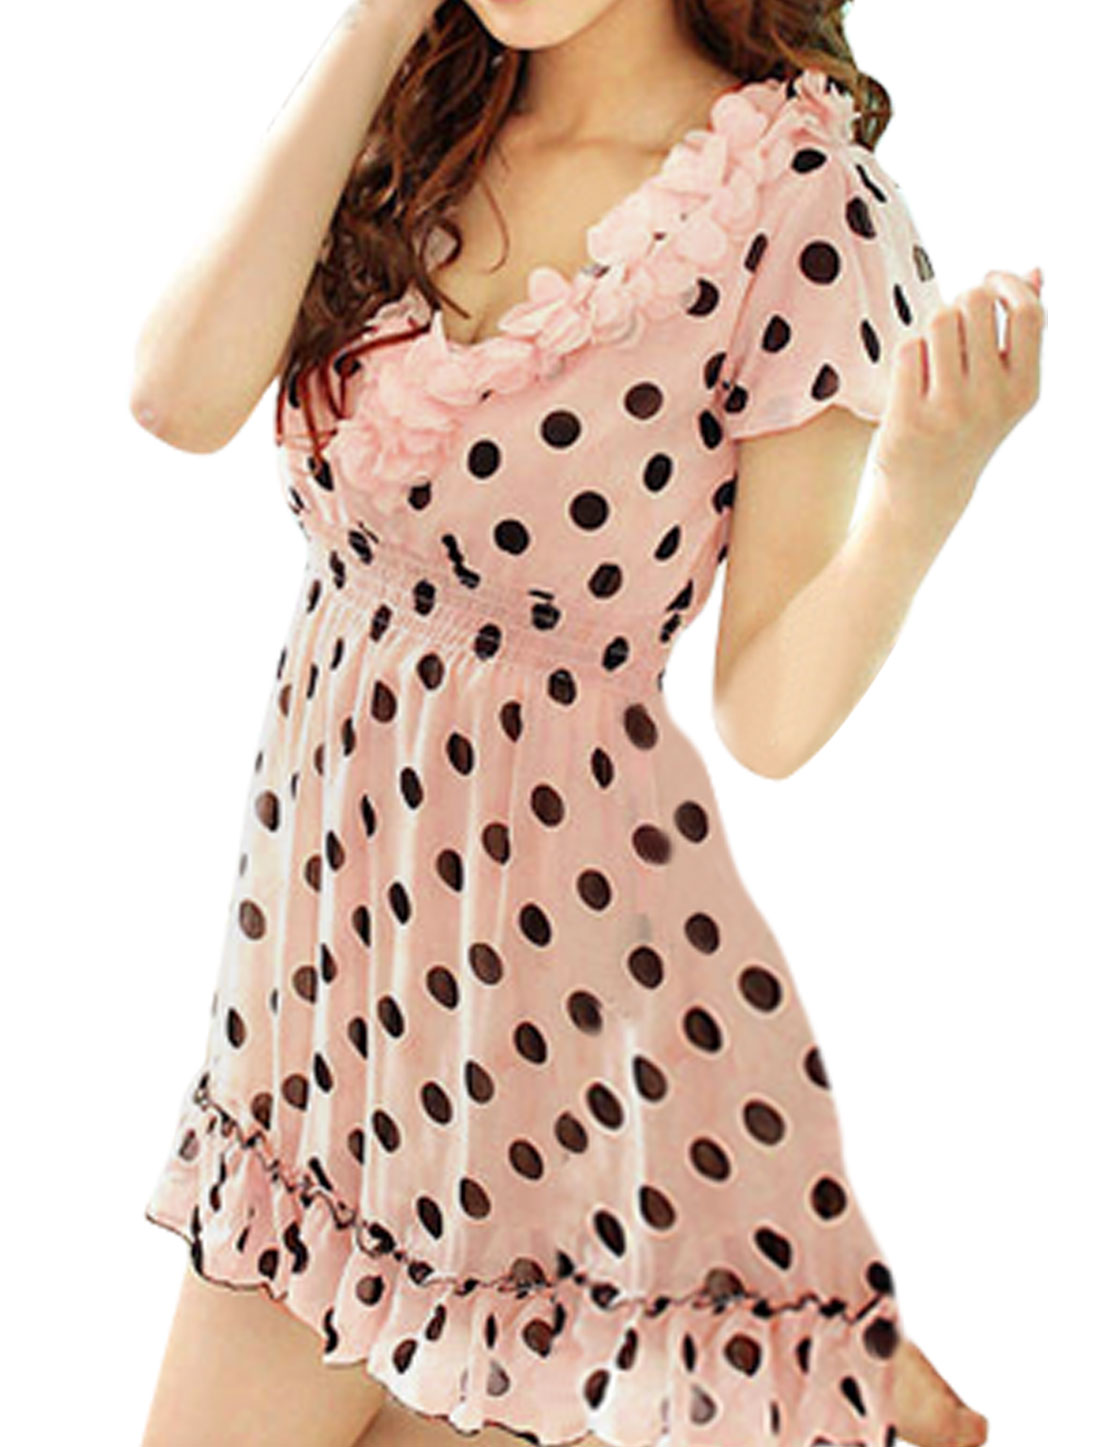 Scalloped Hem Flower V Neck Dots Print Pink Chiffon Mini Dress XS for Women